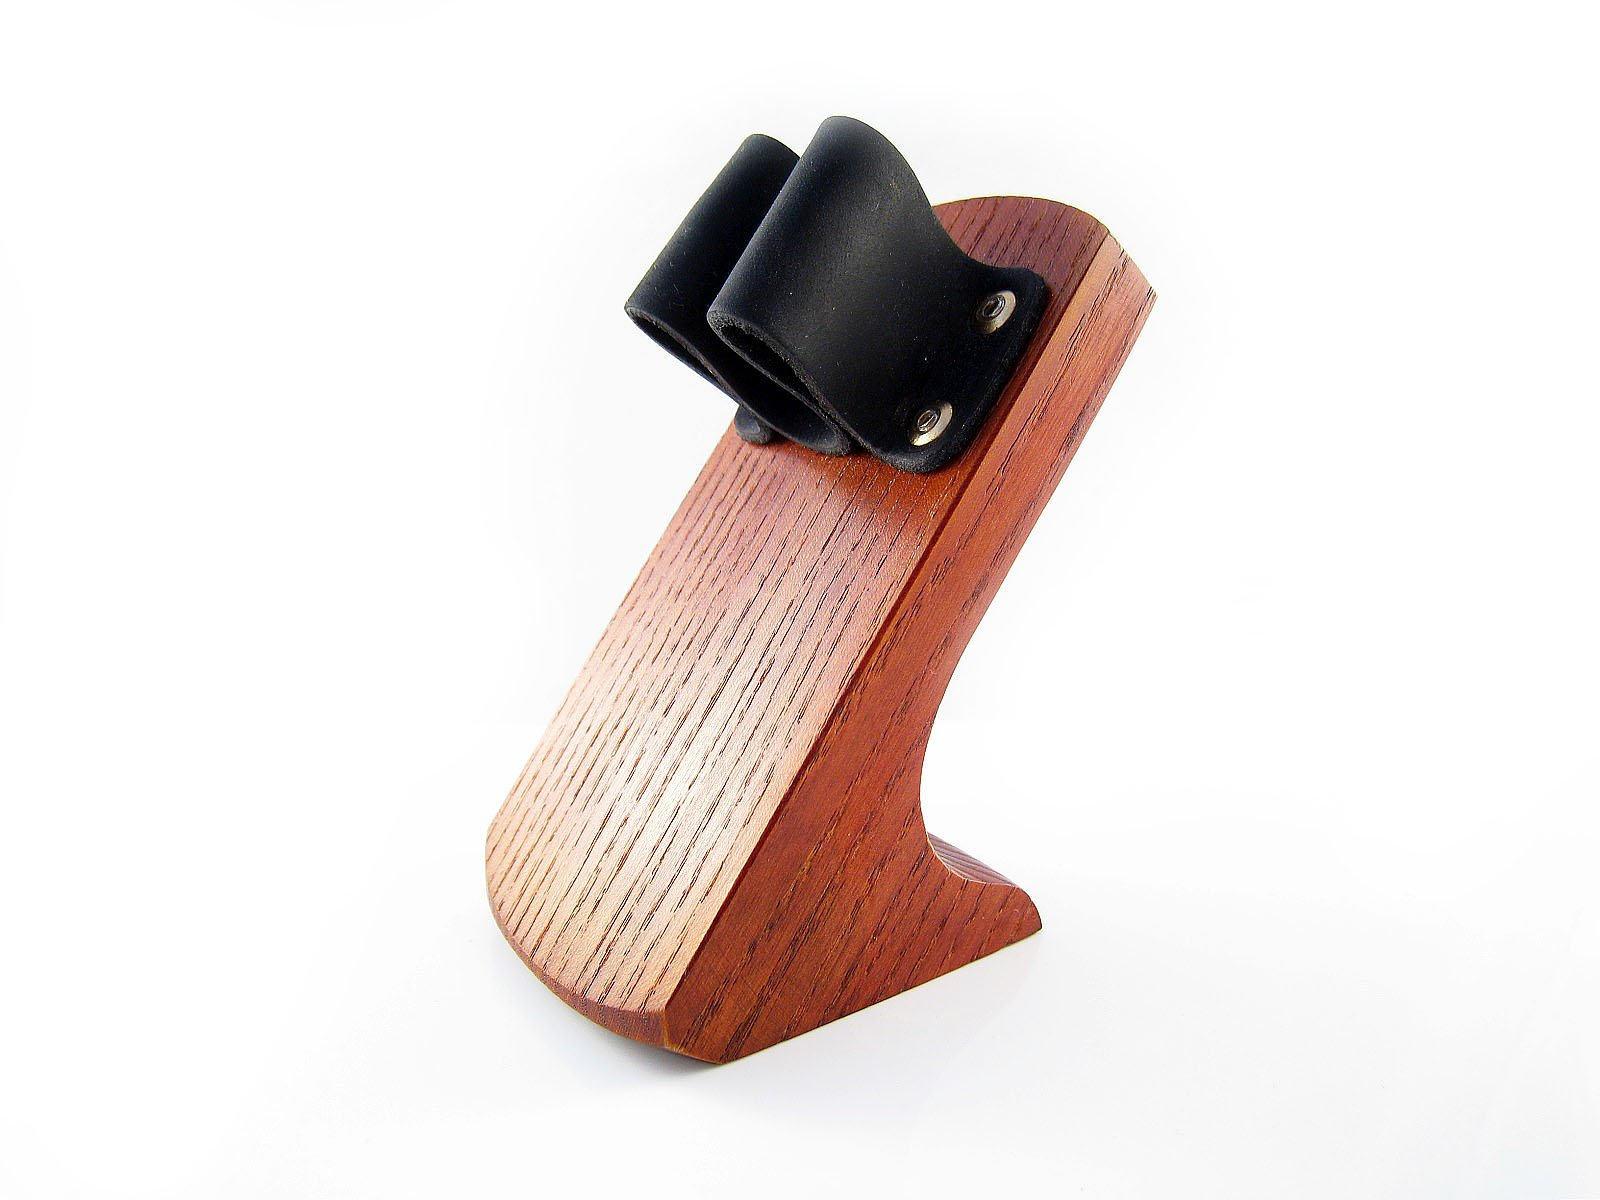 All New Wooden Pipe Stand Rack Holder for Tobacco Pipe - Smoking Pipe. Handcrafted by Fashion Pipes